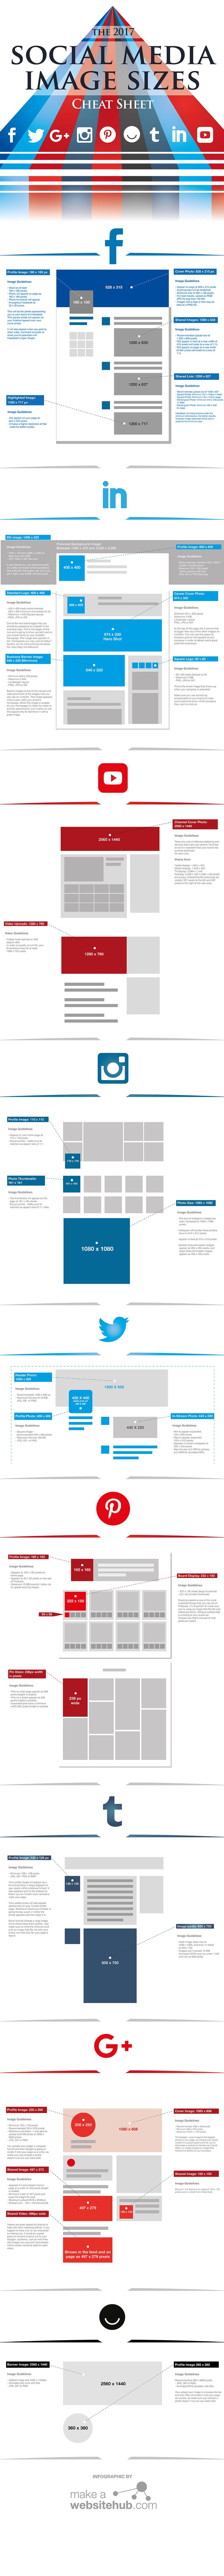 Create perfect social media images with this handy cheat sheet | Creative Bloq